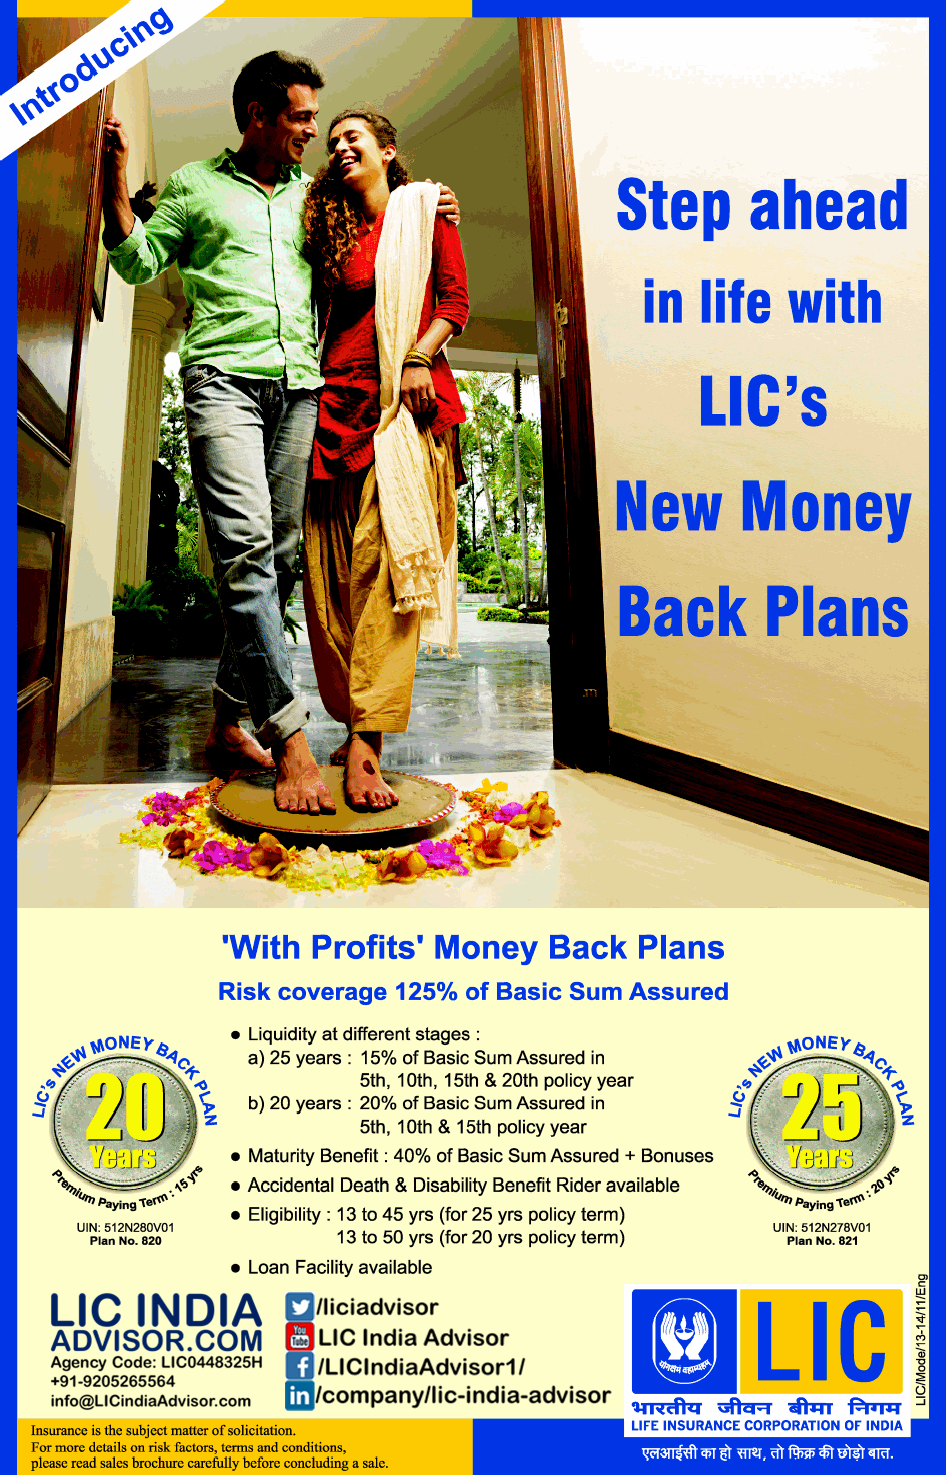 case study on life insurance companies in india The client is a long-term life insurance provider with its headquarters in mumbai, offering individual and group insurance the client has about 400+ branches and presence in 980+ cities and towns in india.